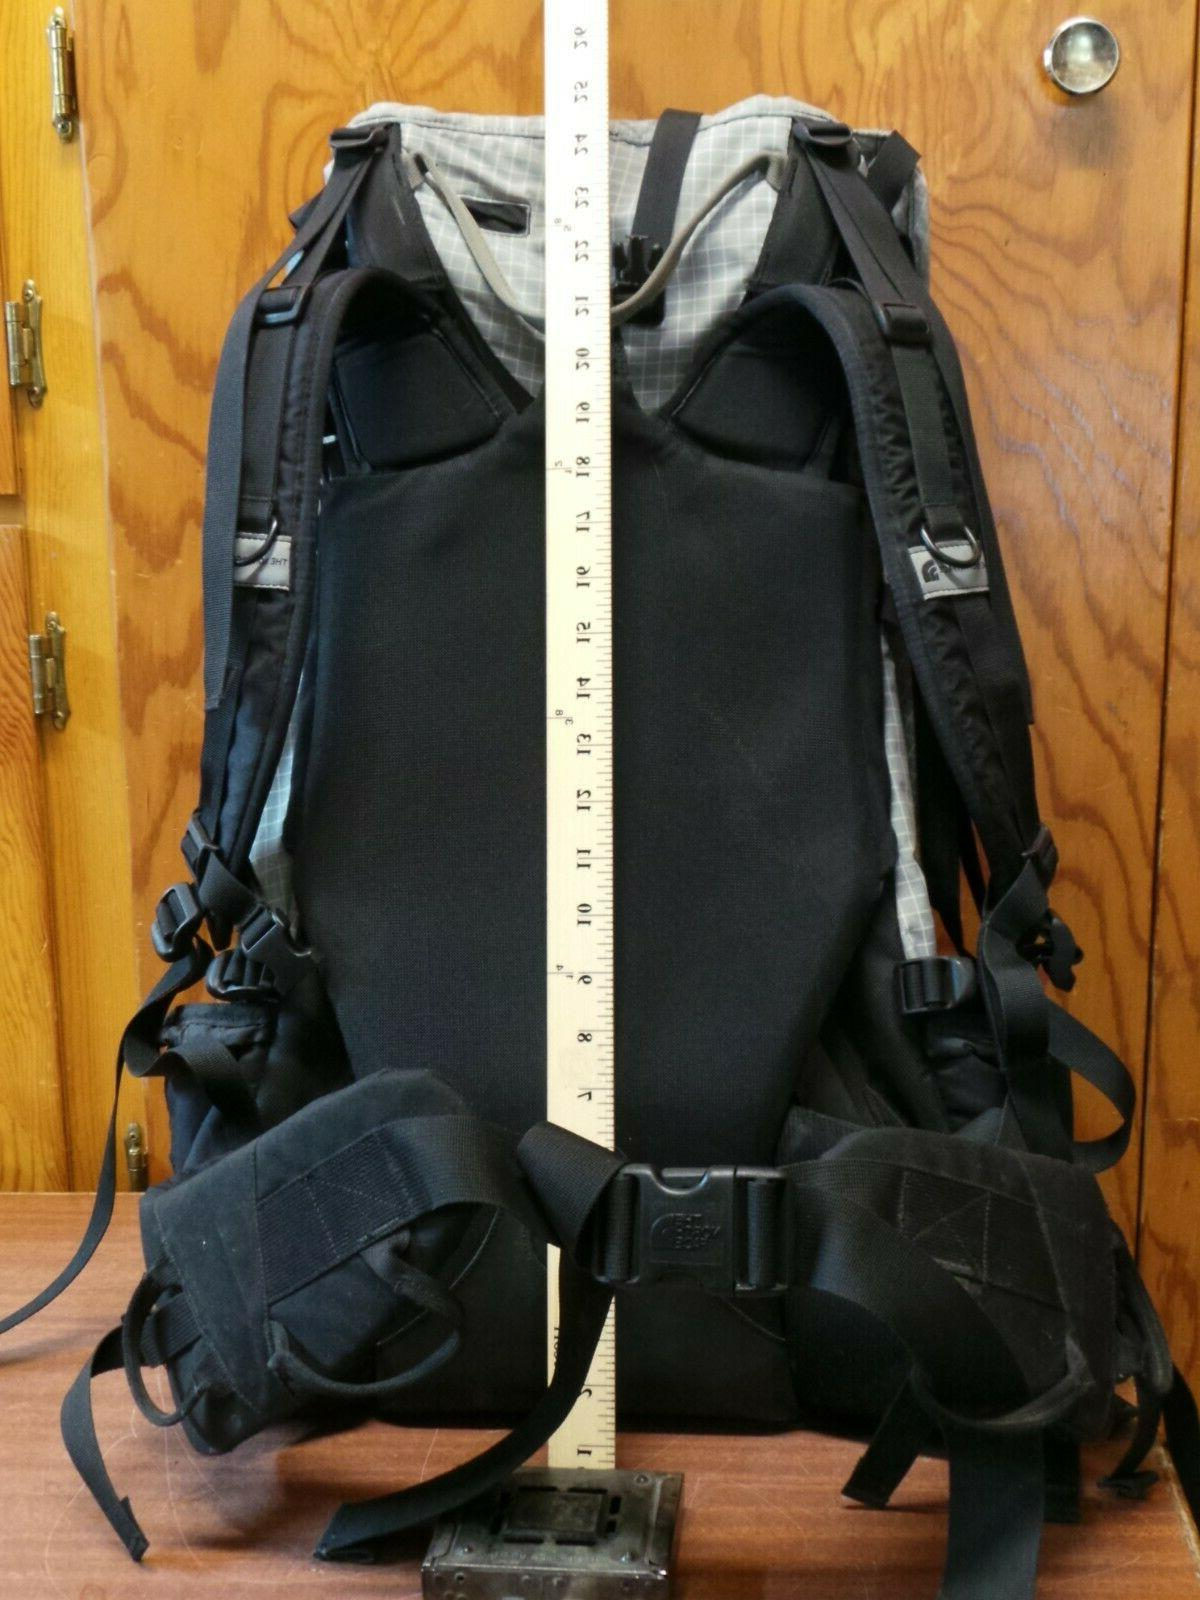 The Seraphim Harness Backpack Hiking Pack